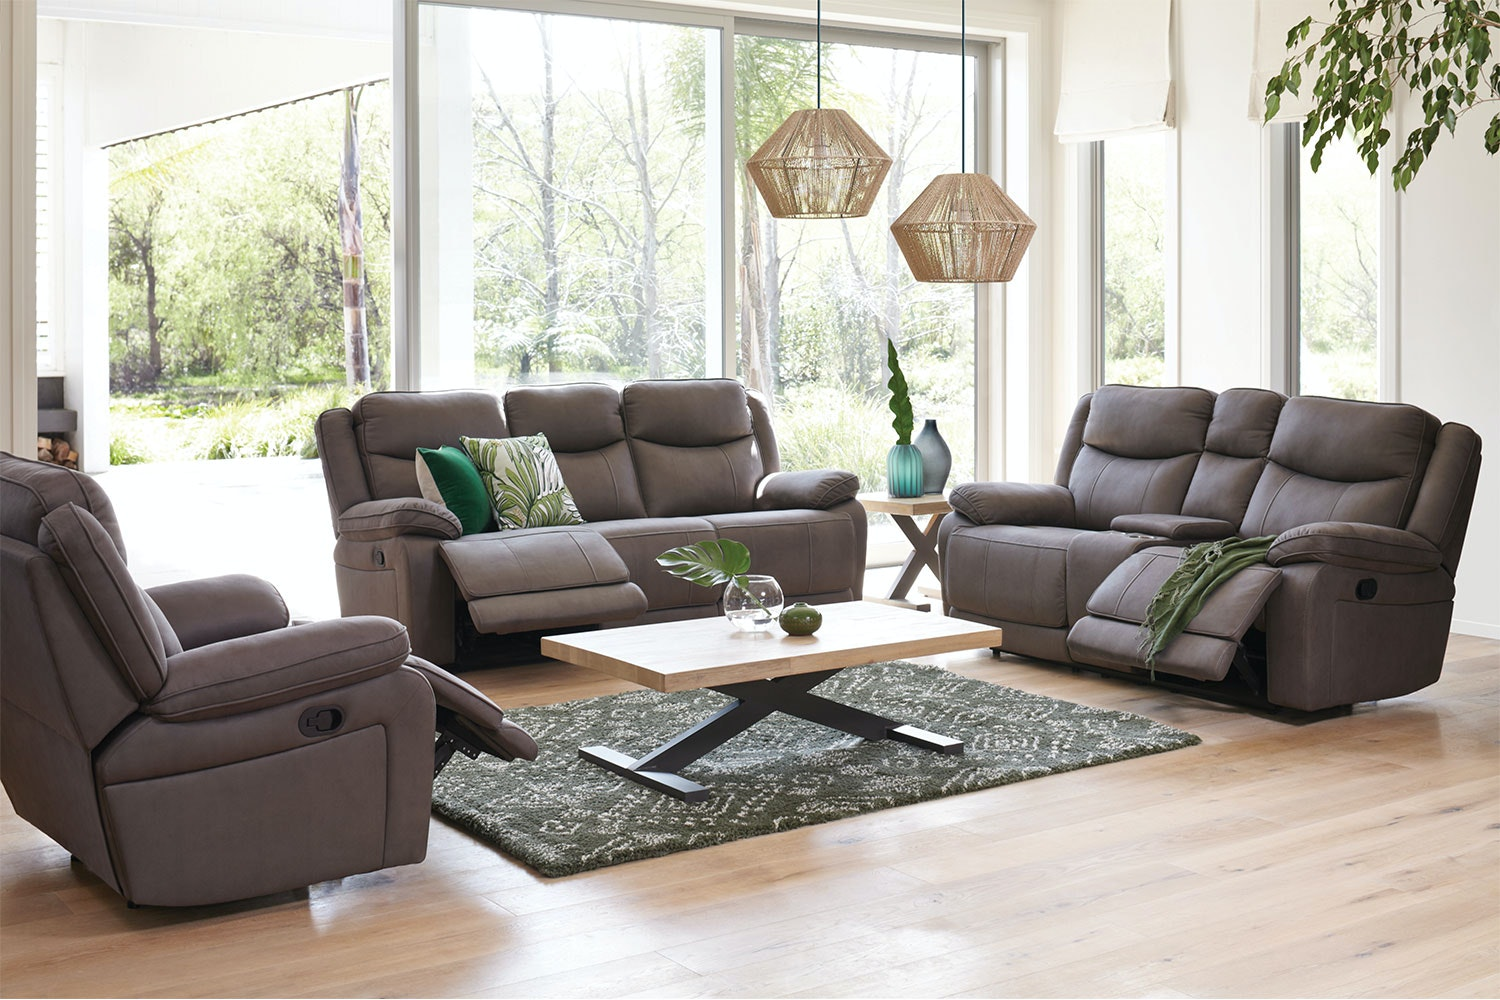 Pembroke 3 Piece Fabric Lounge Suite